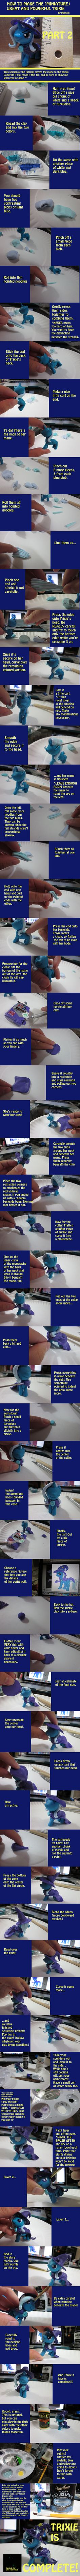 TUTORIAL PART 2: The Making of Mini Trixie by *minnichi on deviantART